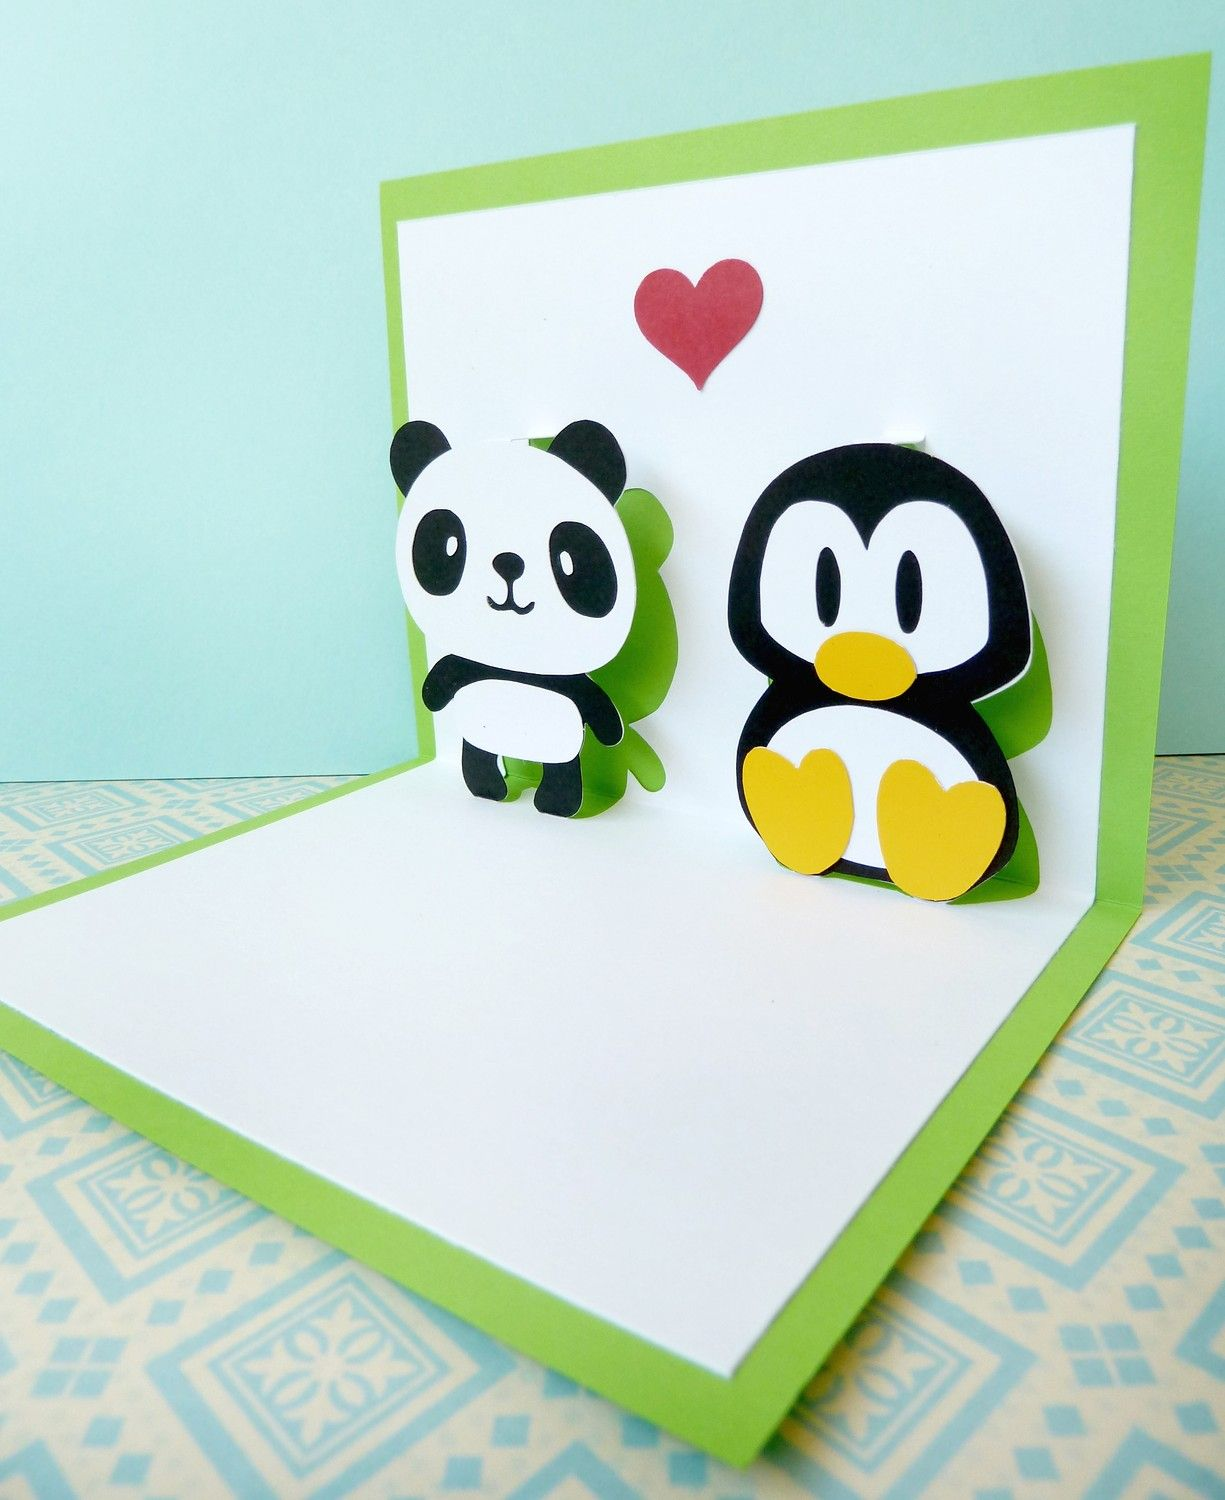 Panda And Penguin In Love Pop Up Card 7 85 Via Etsy Pop Up Cards Cards Handmade Pop Up Art